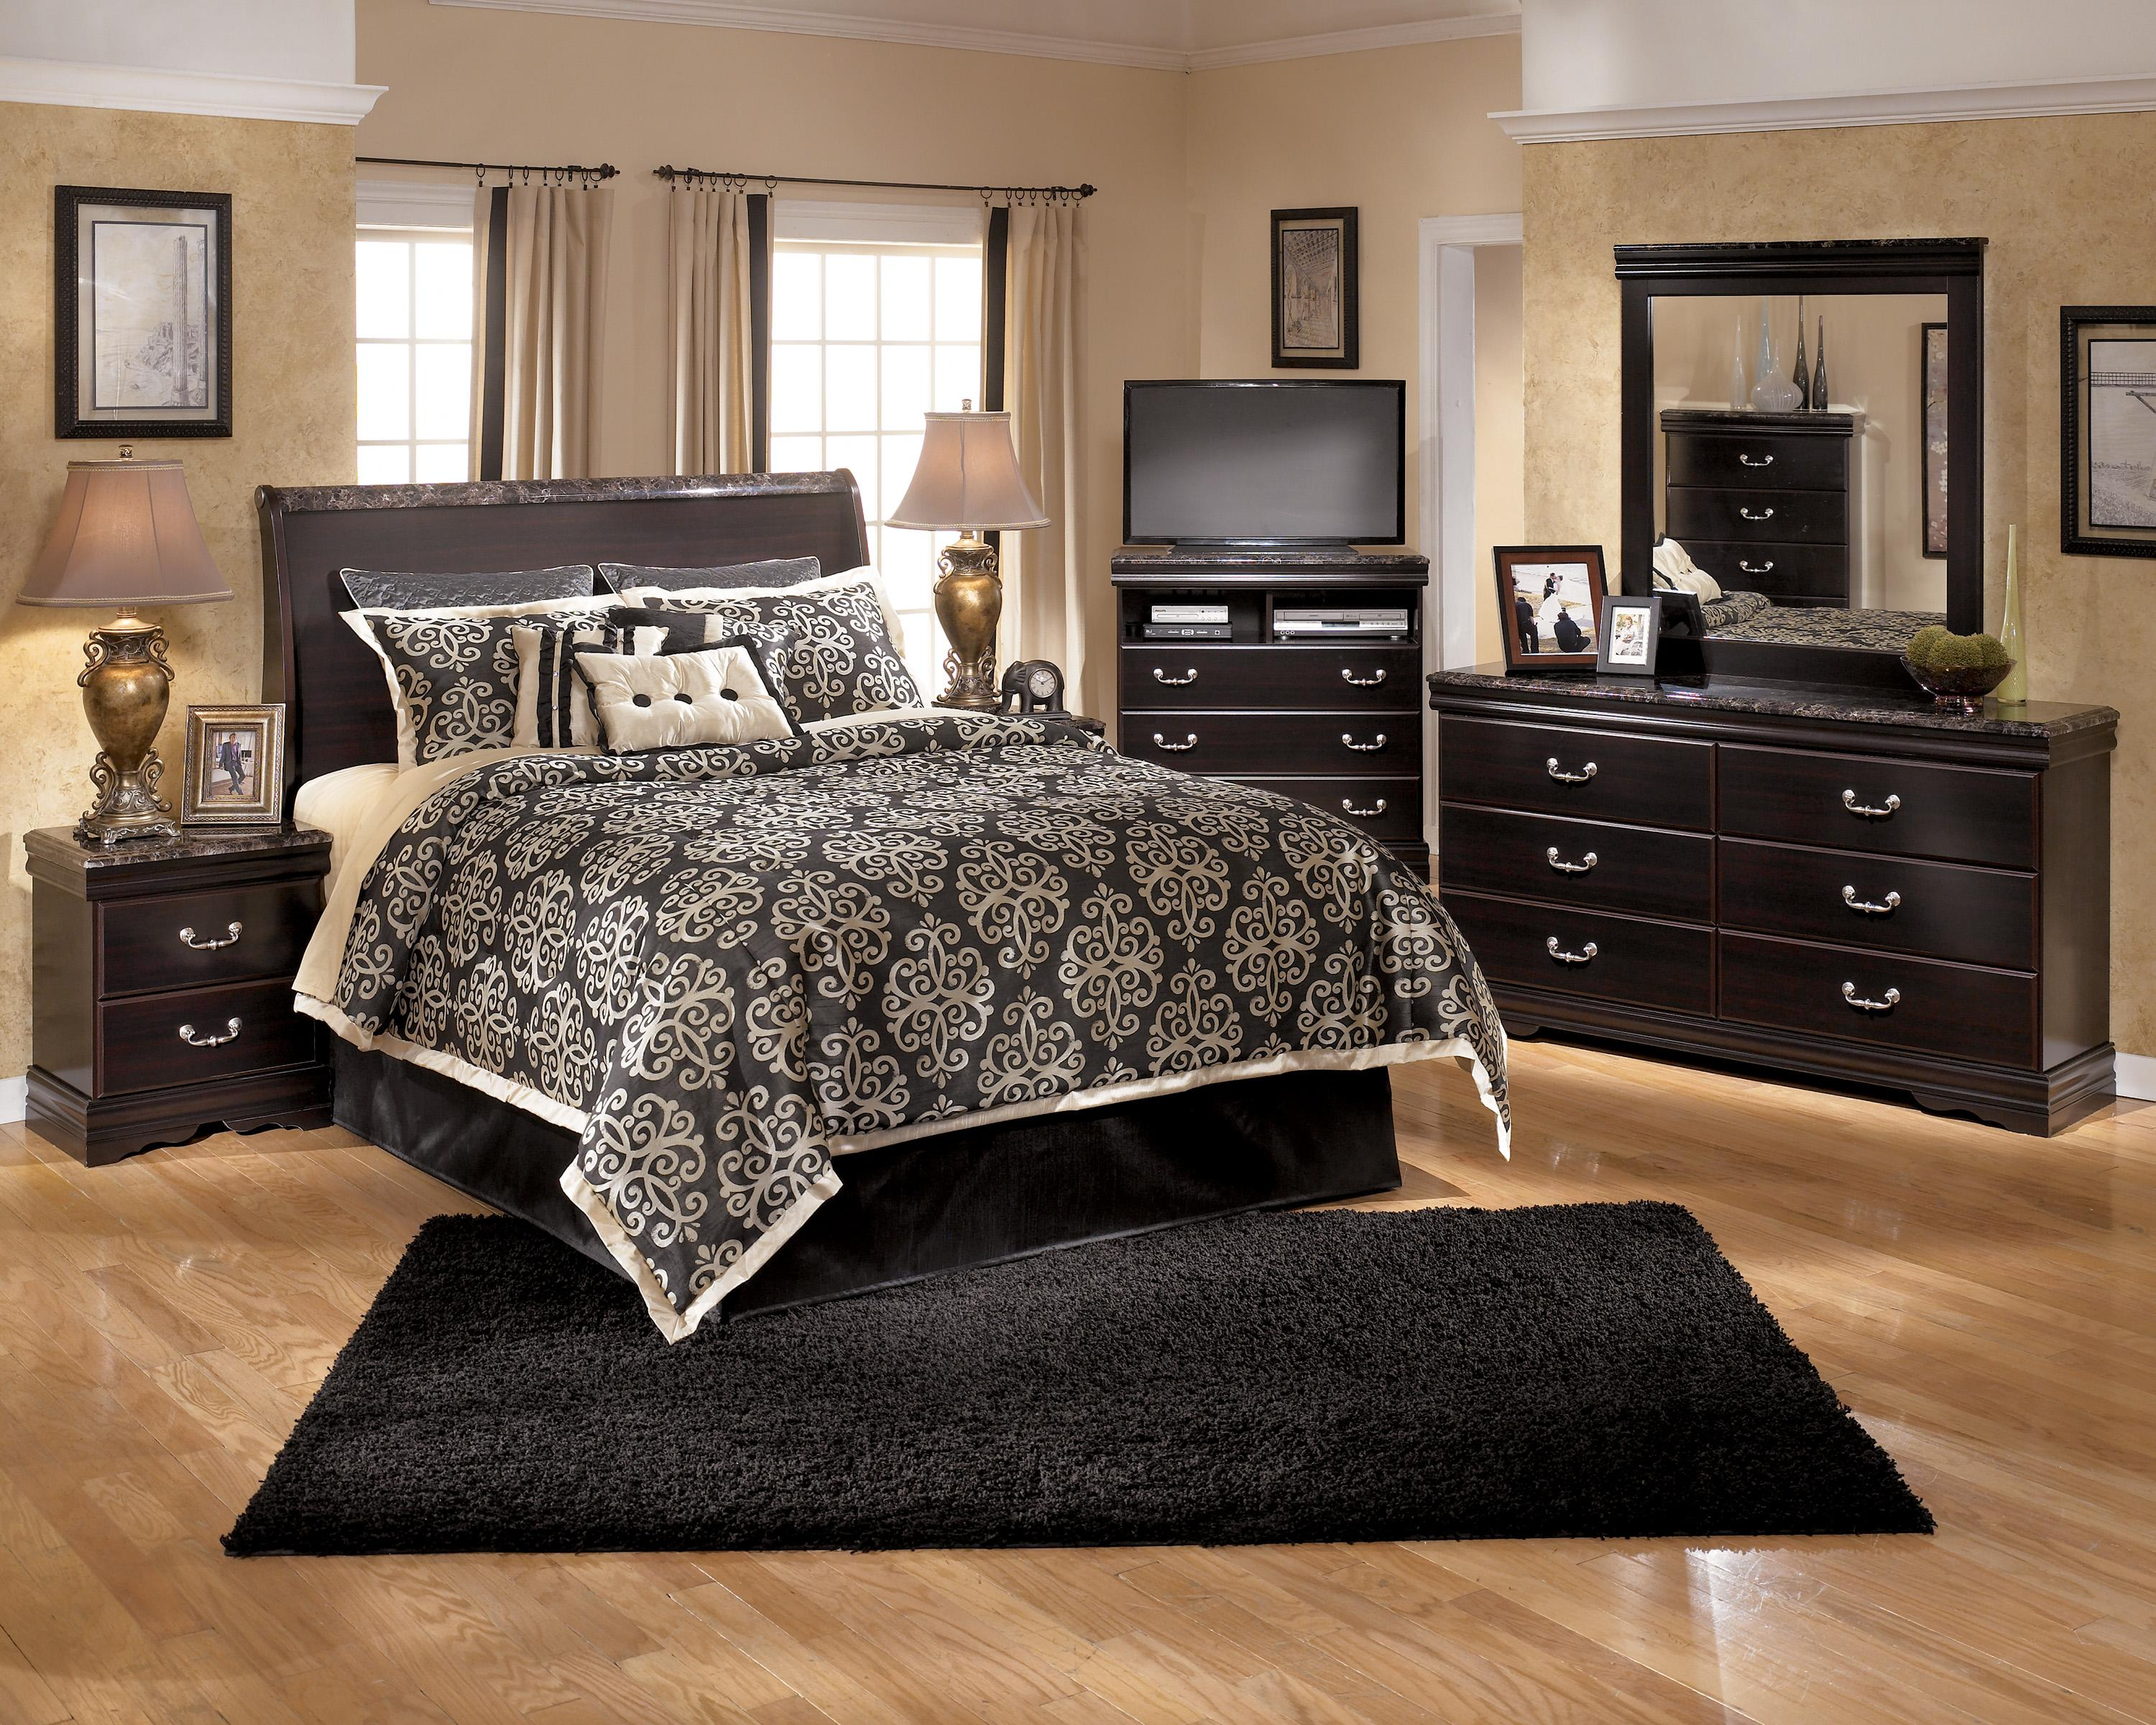 Excellent Ashley King Size Bedroom Sets Ideas